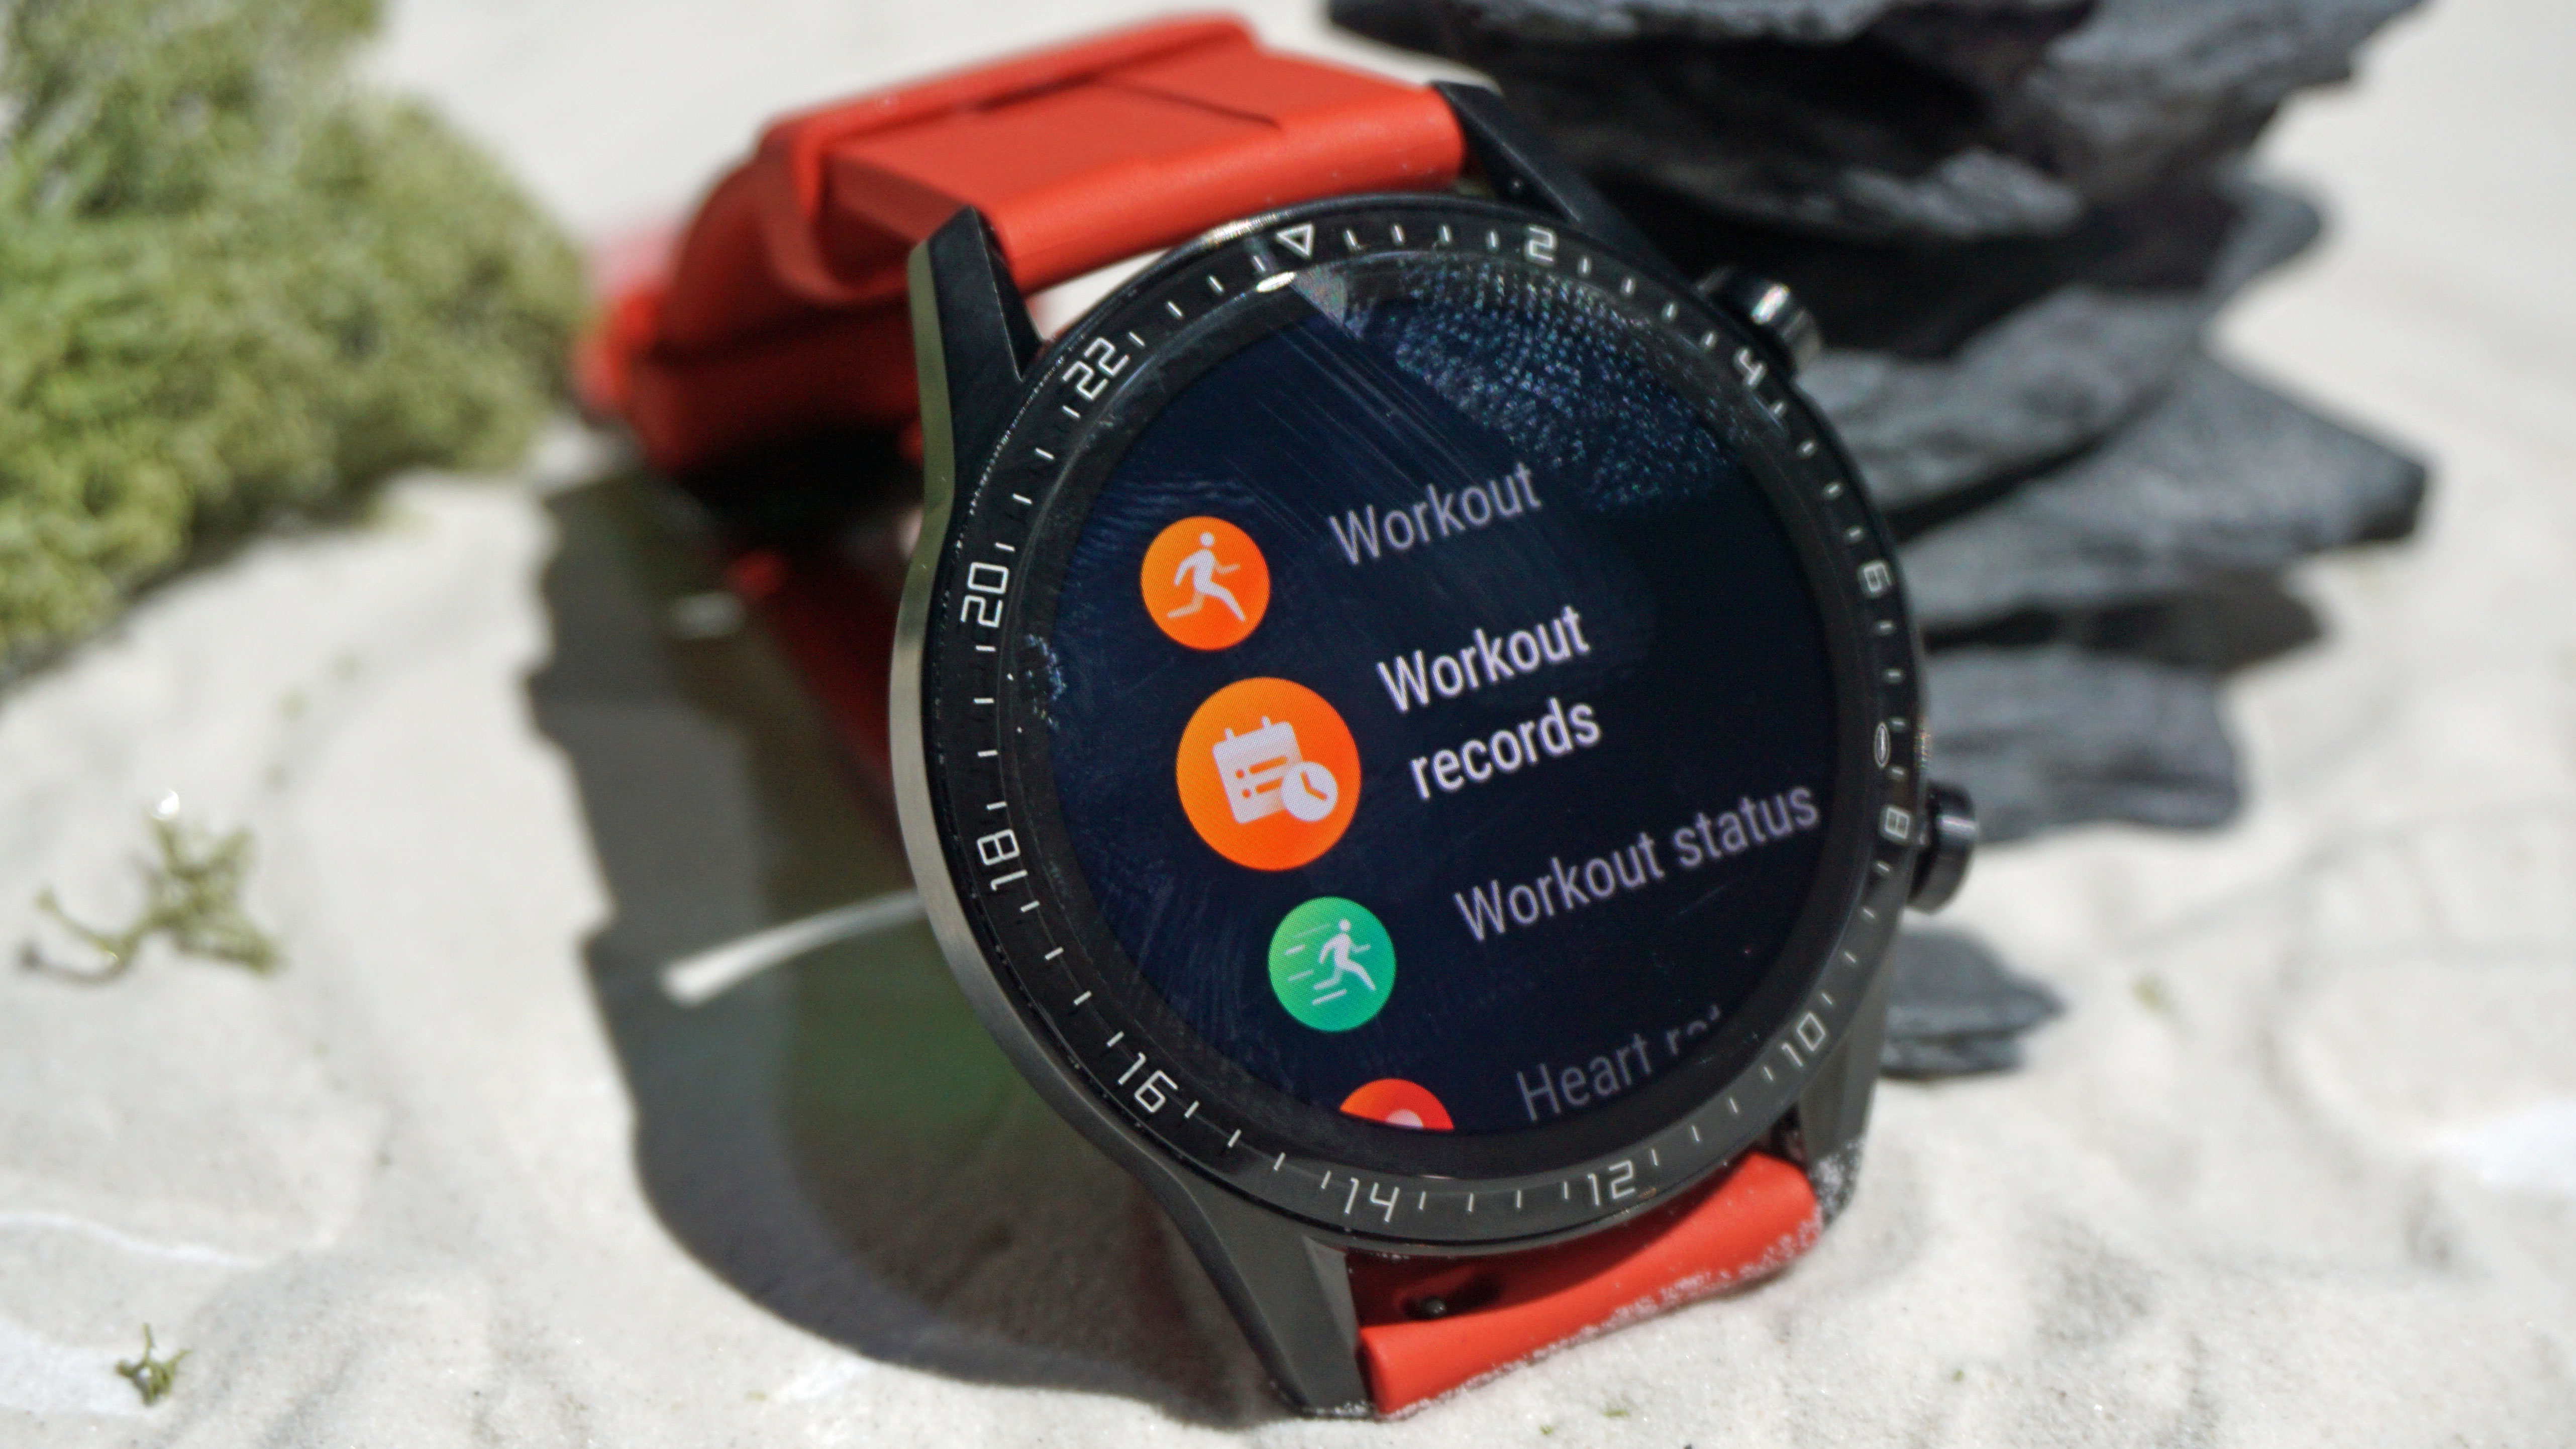 Huawei Watch GT 2 gets NFC as part of latest update